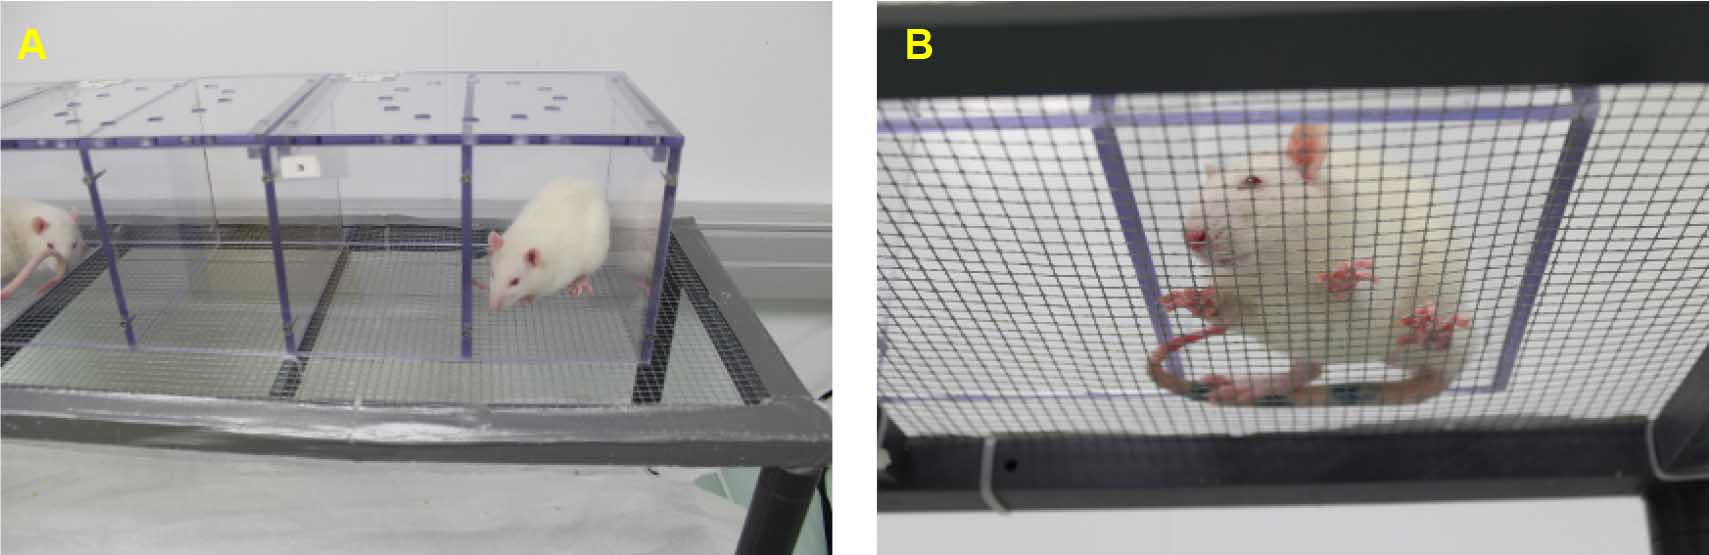 Assessment Of Mechanical Allodynia In Rats Using The